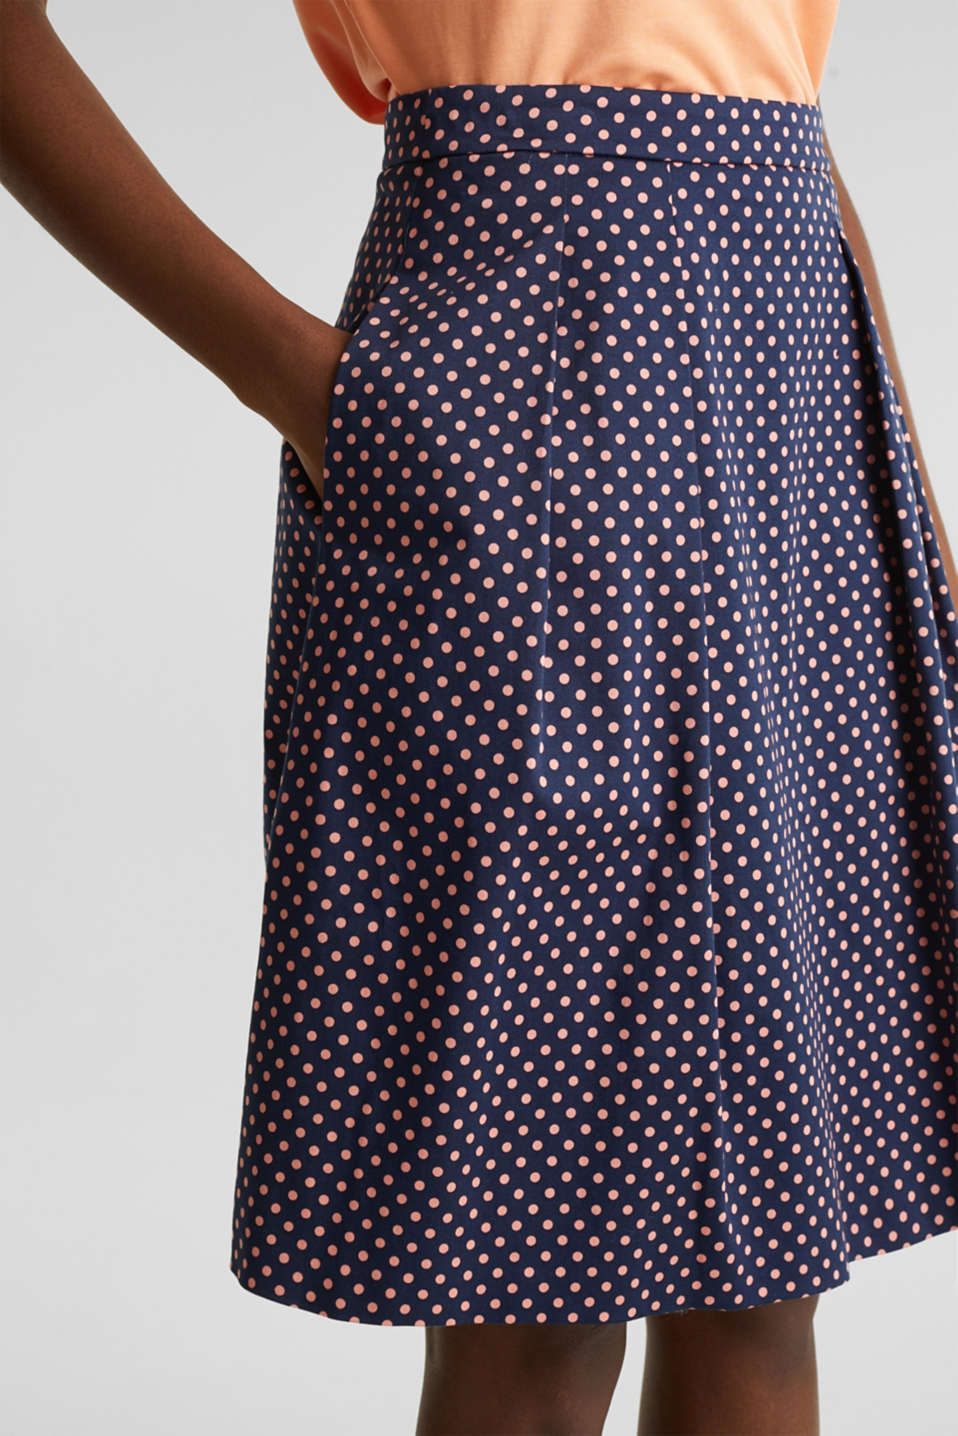 Satined polka dot skirt with stretch, NAVY 4, detail image number 2